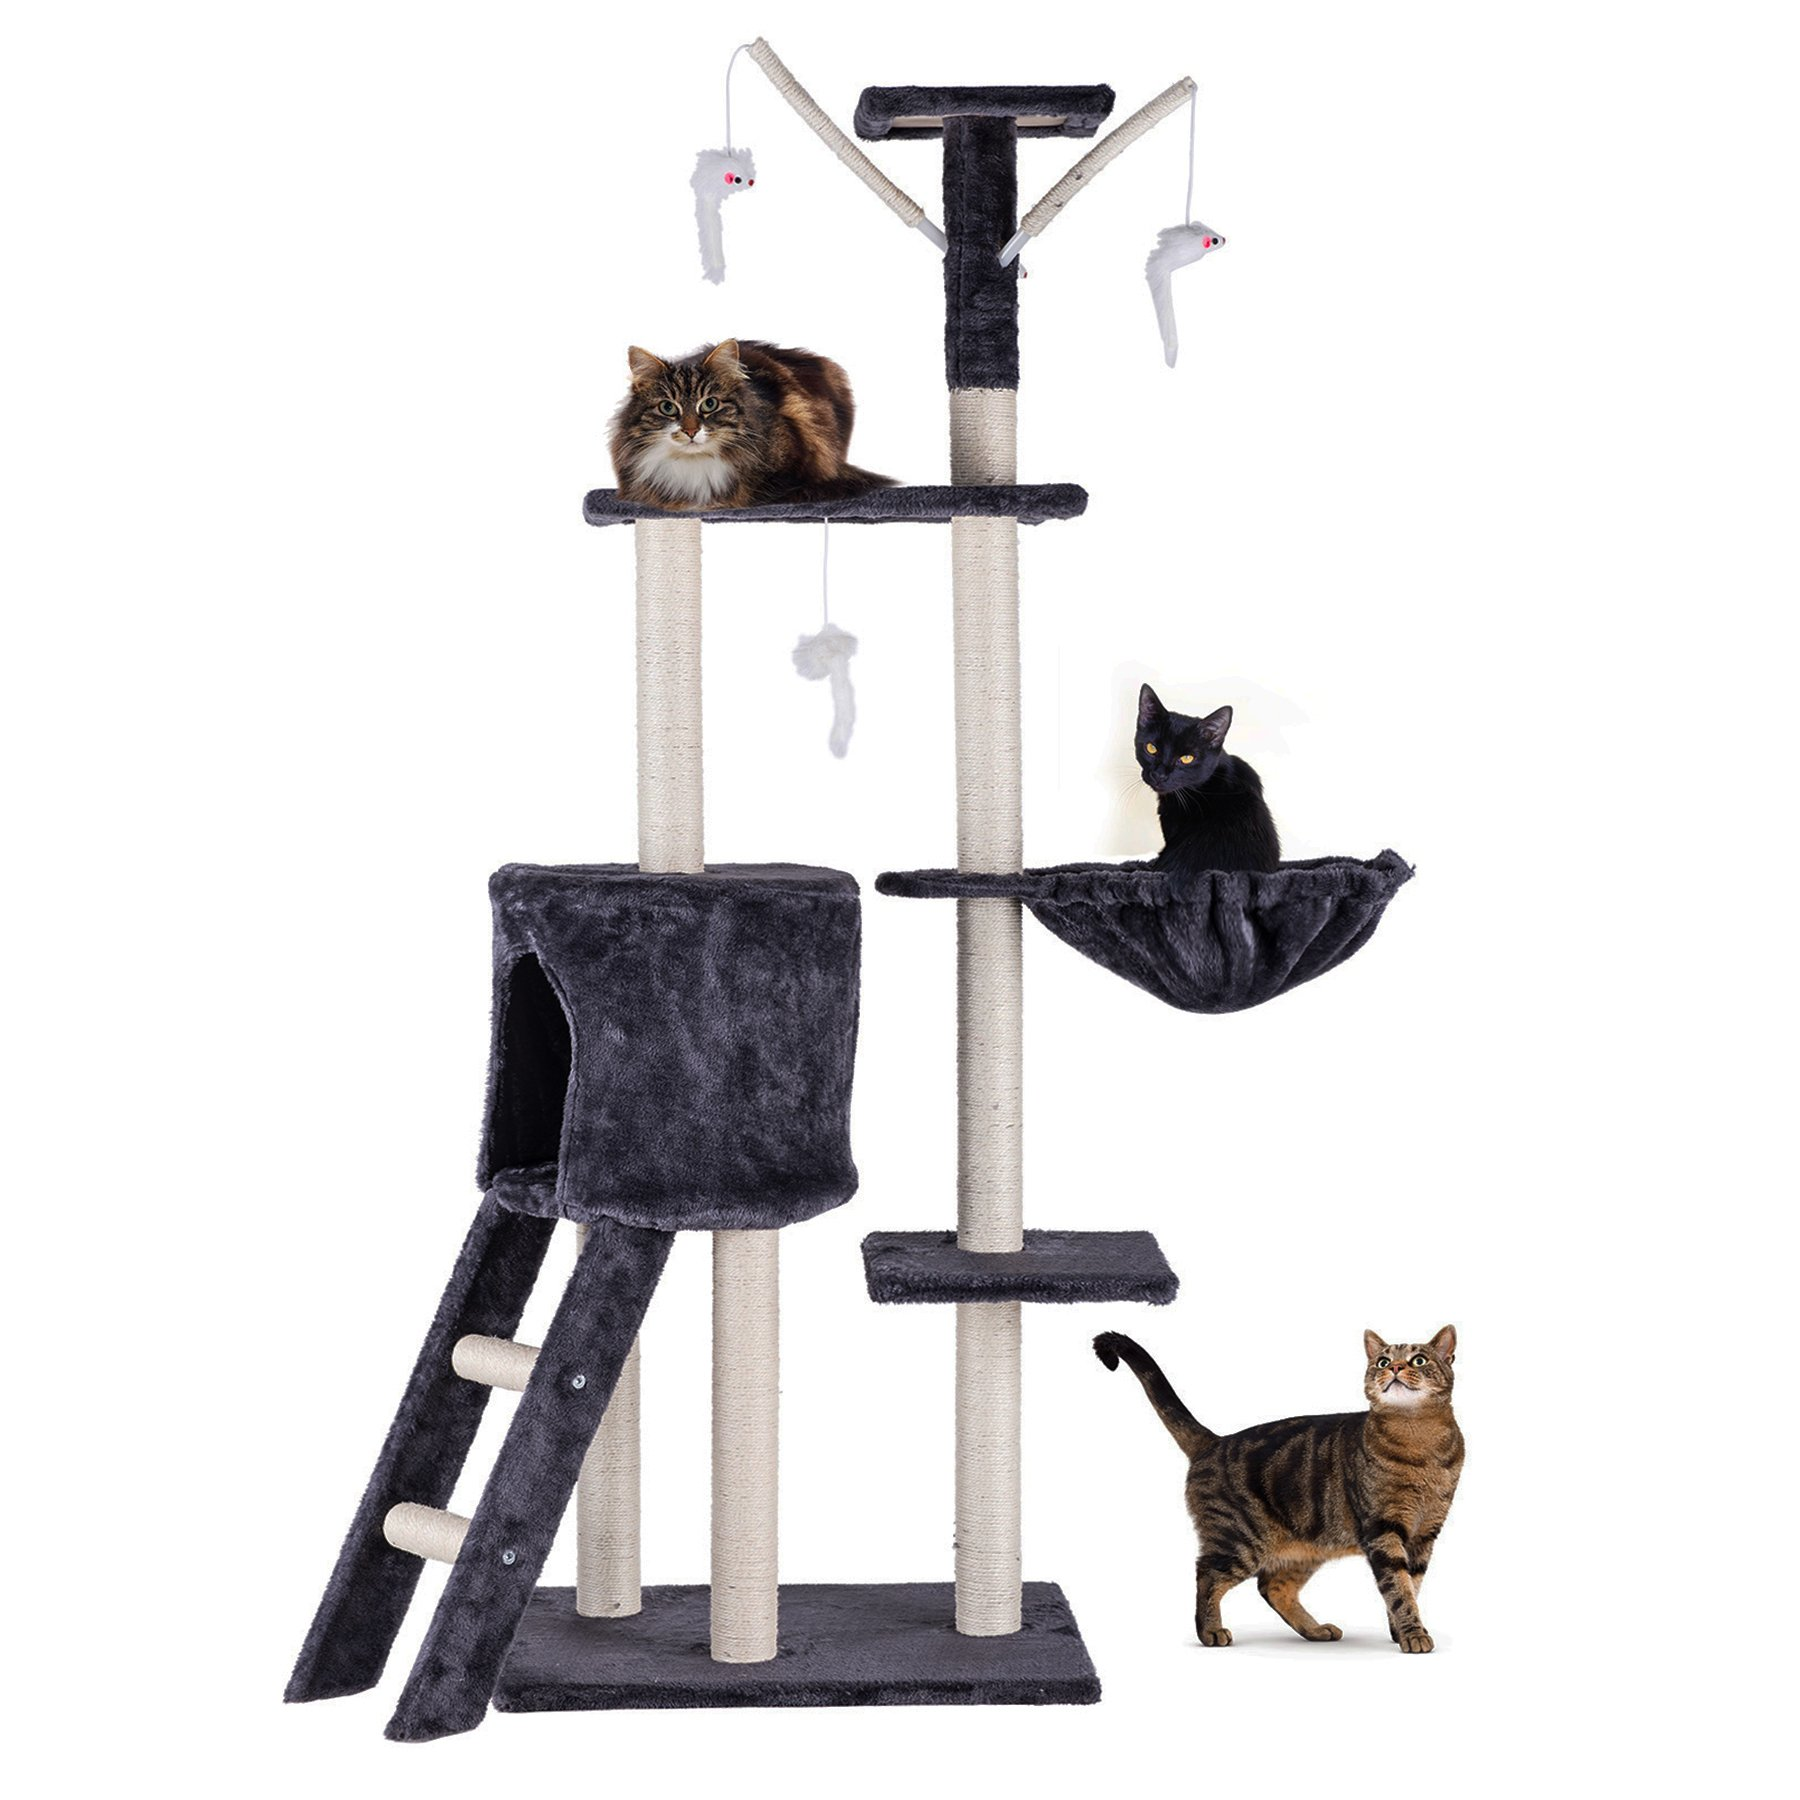 CO-Z 5 Levels Cat Tower Tree House Kitty Scratcher Play House Furniture Stain-Resistant Condo 5 Tiers with Toys (Dark Brown)